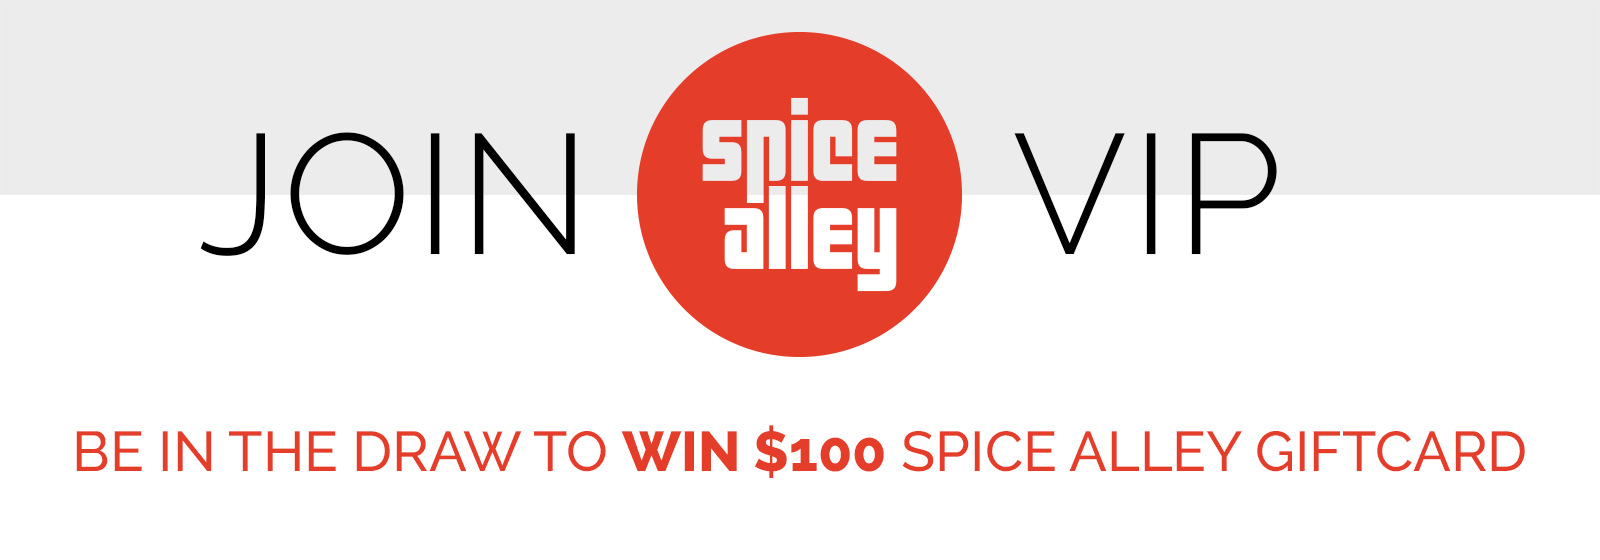 Join Spice Alley VIP